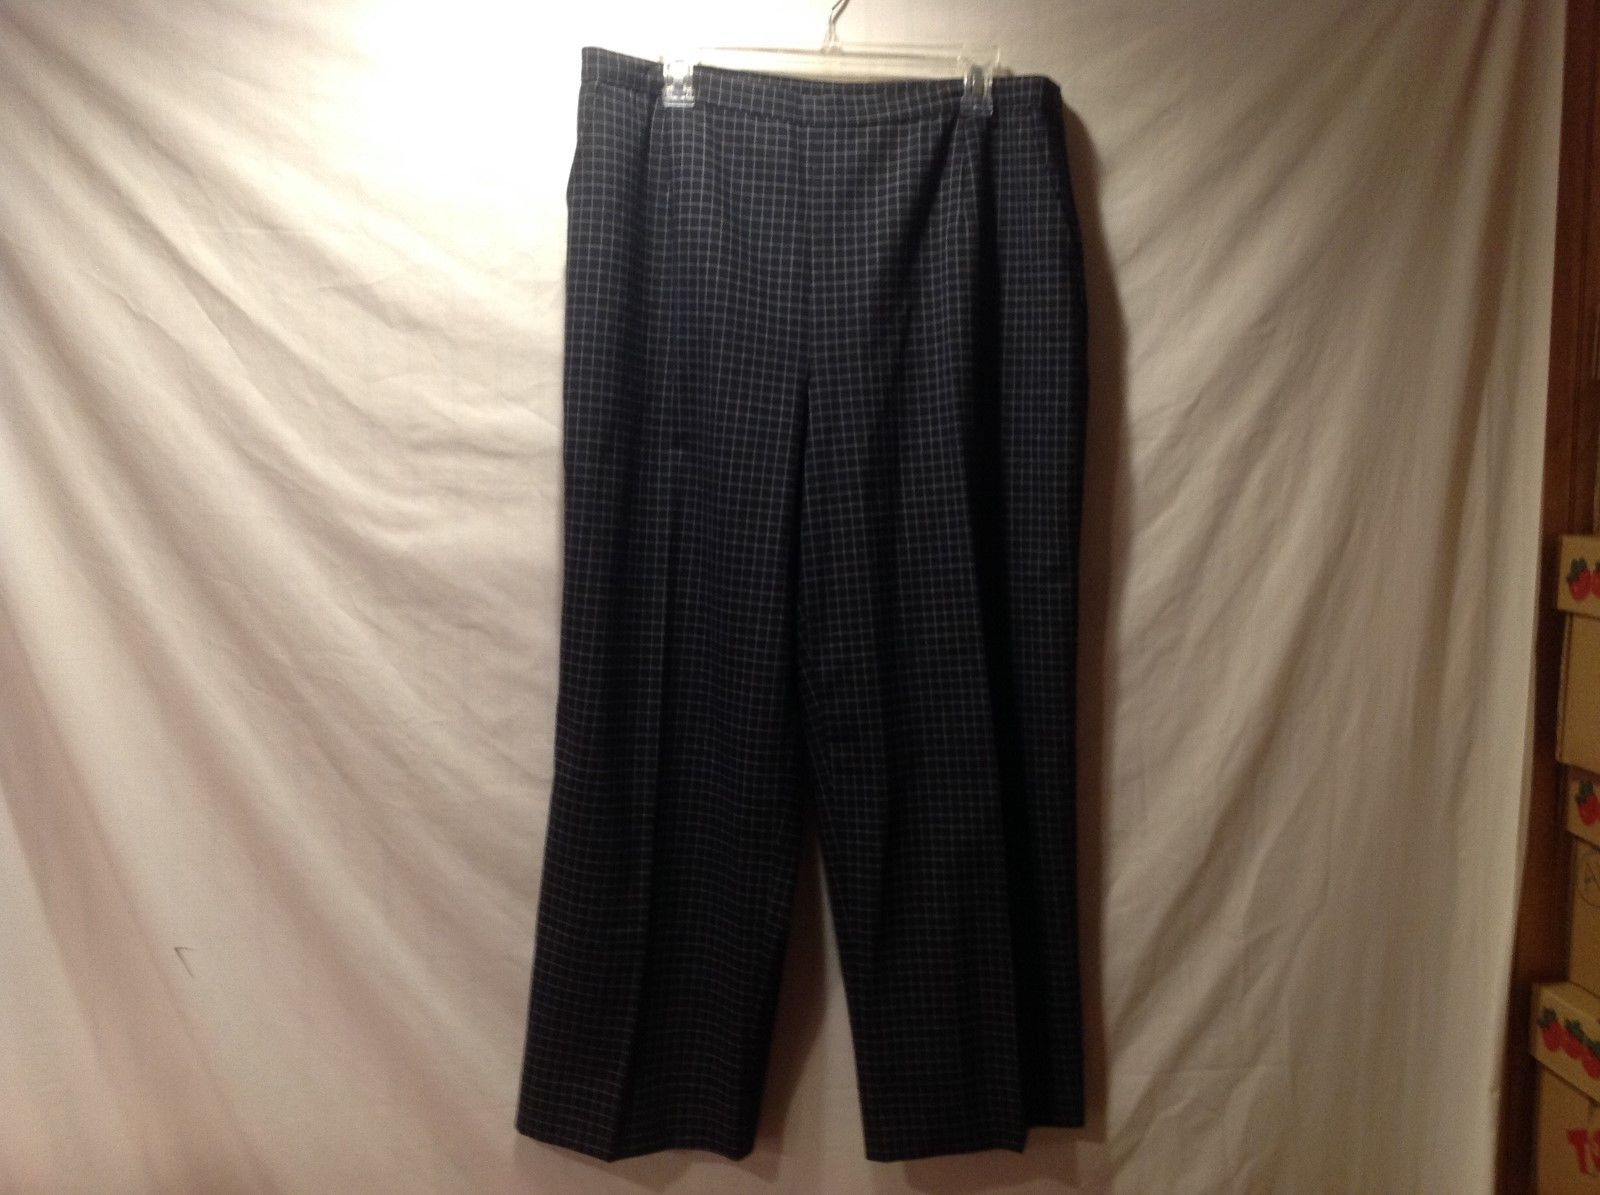 Marina Rinaldi Basic Black Dress Pants w/ White Grid Pattern